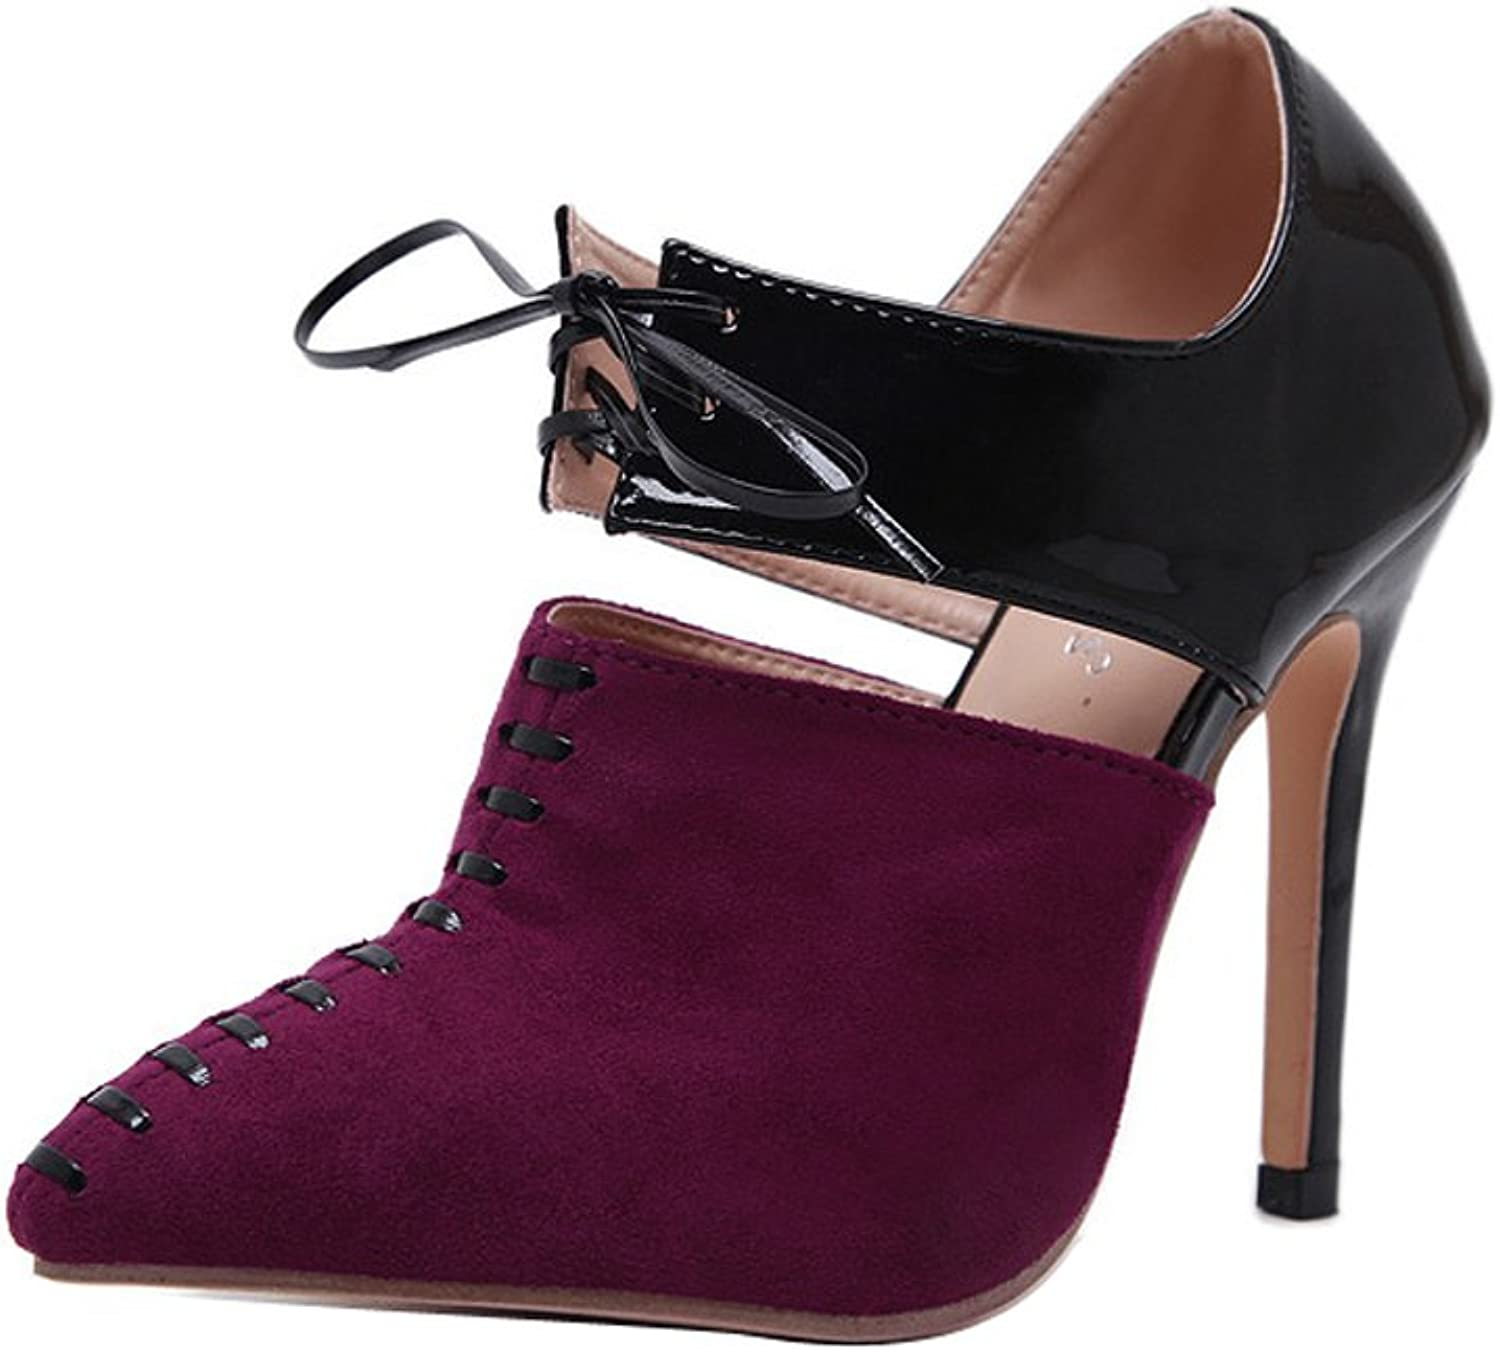 Ladola Womens Two-Toned Pointed-Toe Suede Pumps shoes